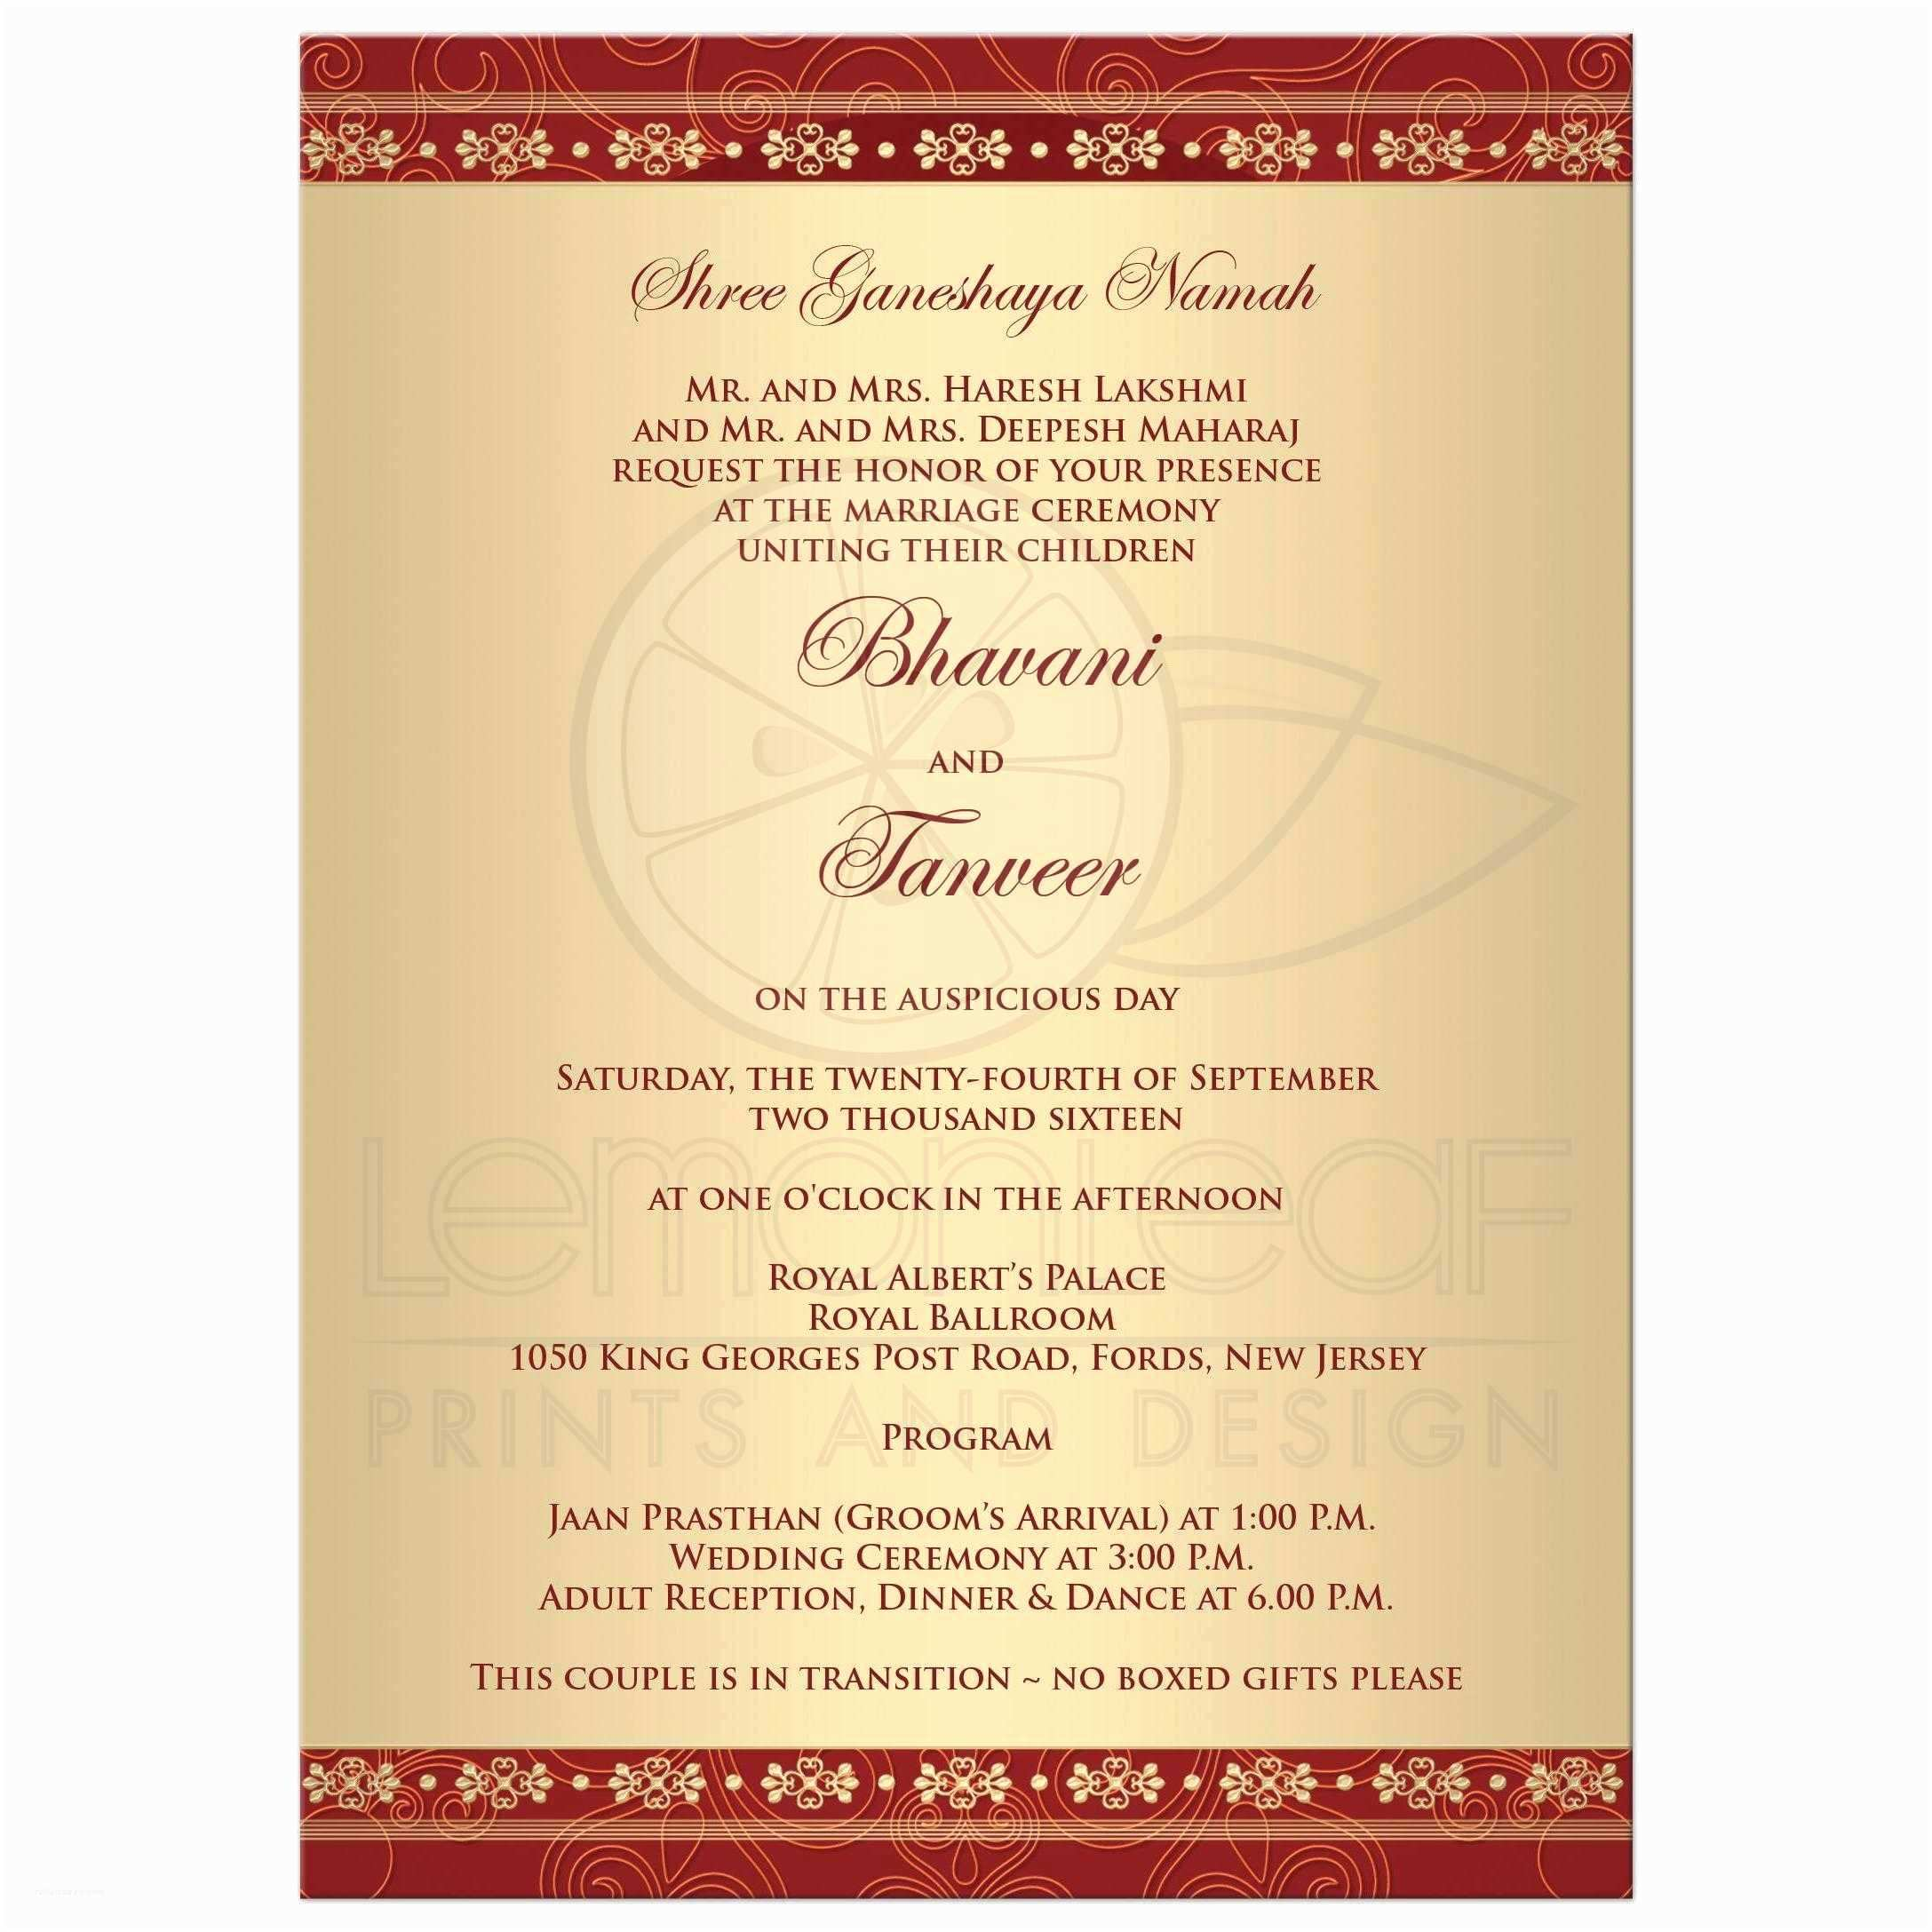 Wedding Invitation for Indian Wedding Wedding Invitation Indian Wedding Invitation Cards